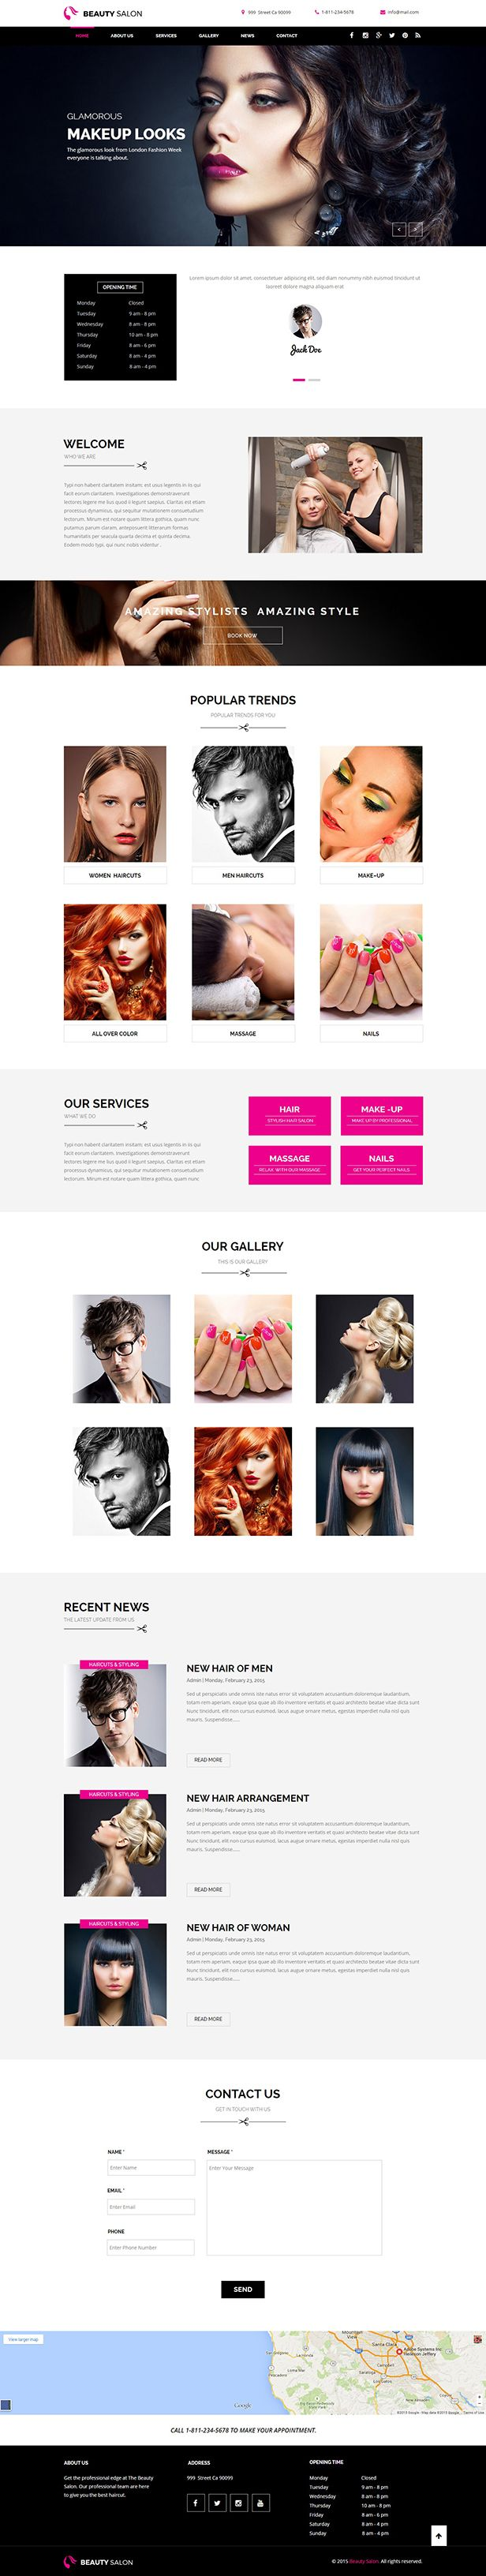 Beauty Salon Muse Template  Good to see you here! Beauty Salon Muse Template is a muse template for anyone who wants beauty salon, hair salon and barber website and you need to use Adobe Muse to edit the theme.